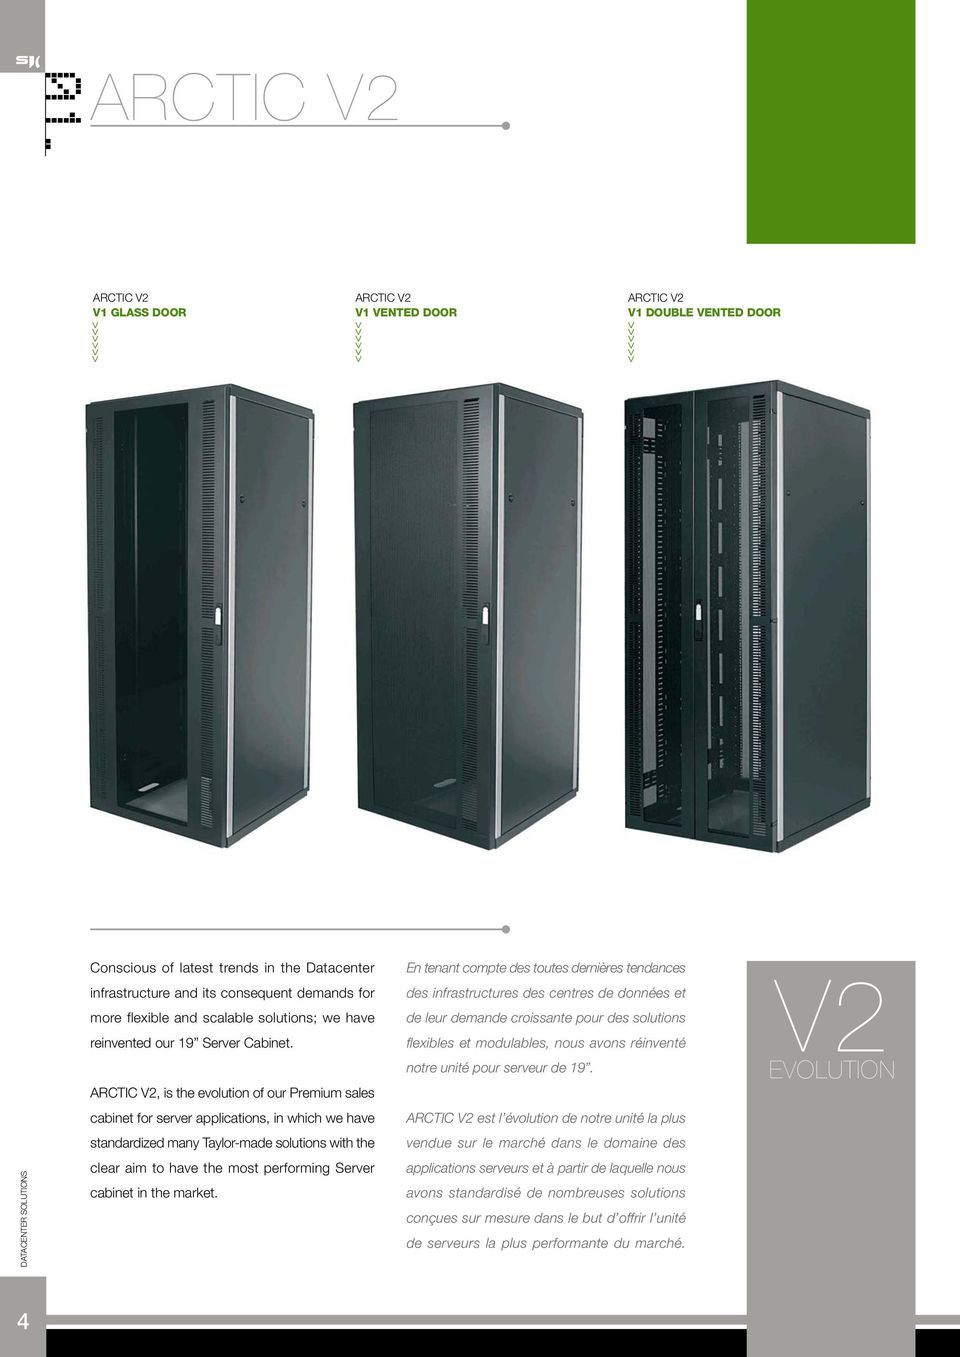 , is the evolution of our Premium sales cabinet for server applications, in which we have standardized many Taylor-made solutions with the clear aim to have the most performing Server cabinet in the